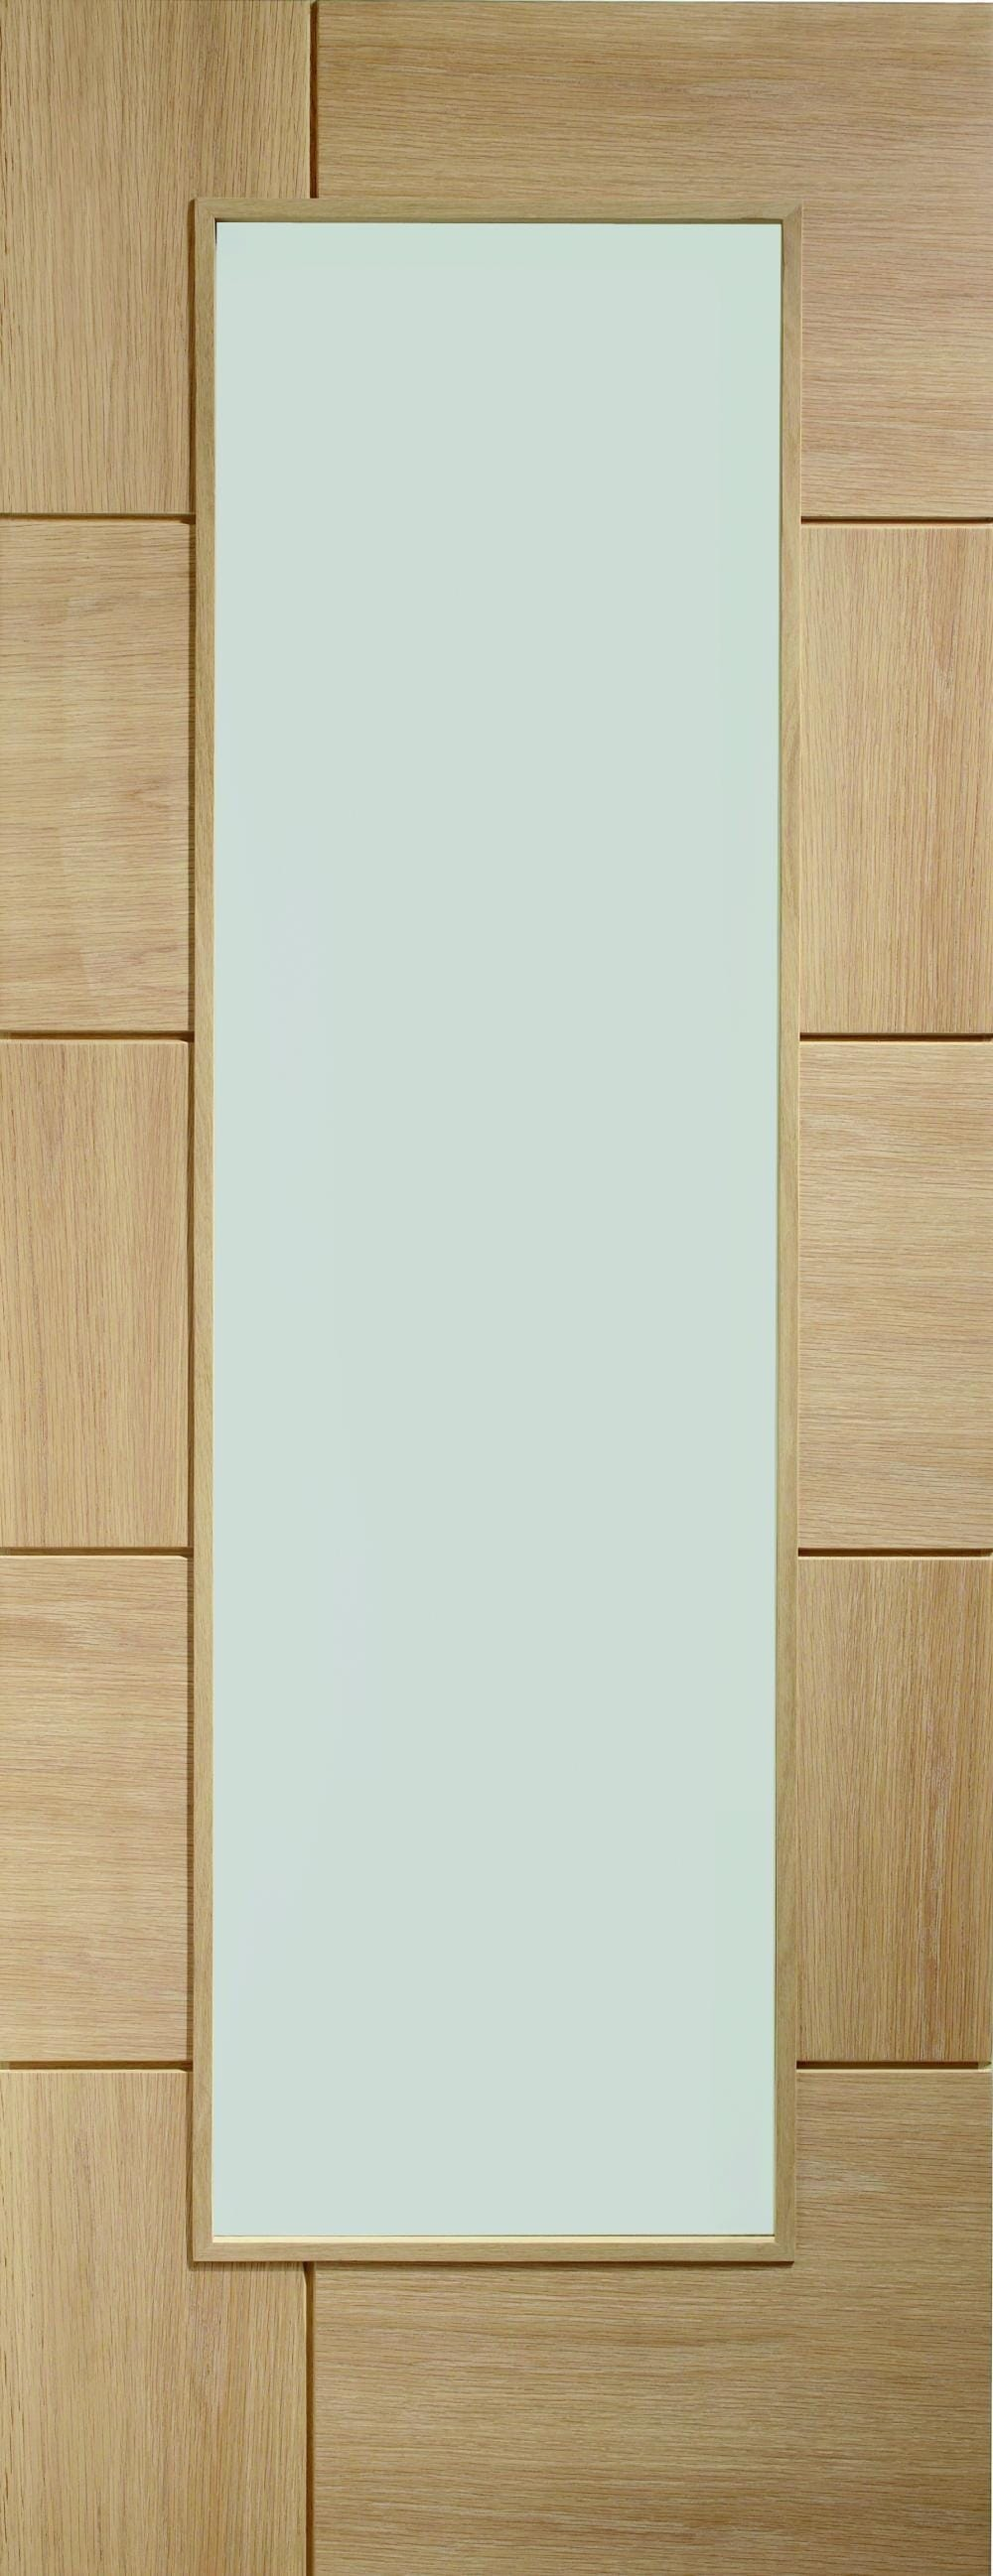 Ravenna Oak - Prefinished Clear Glass Image